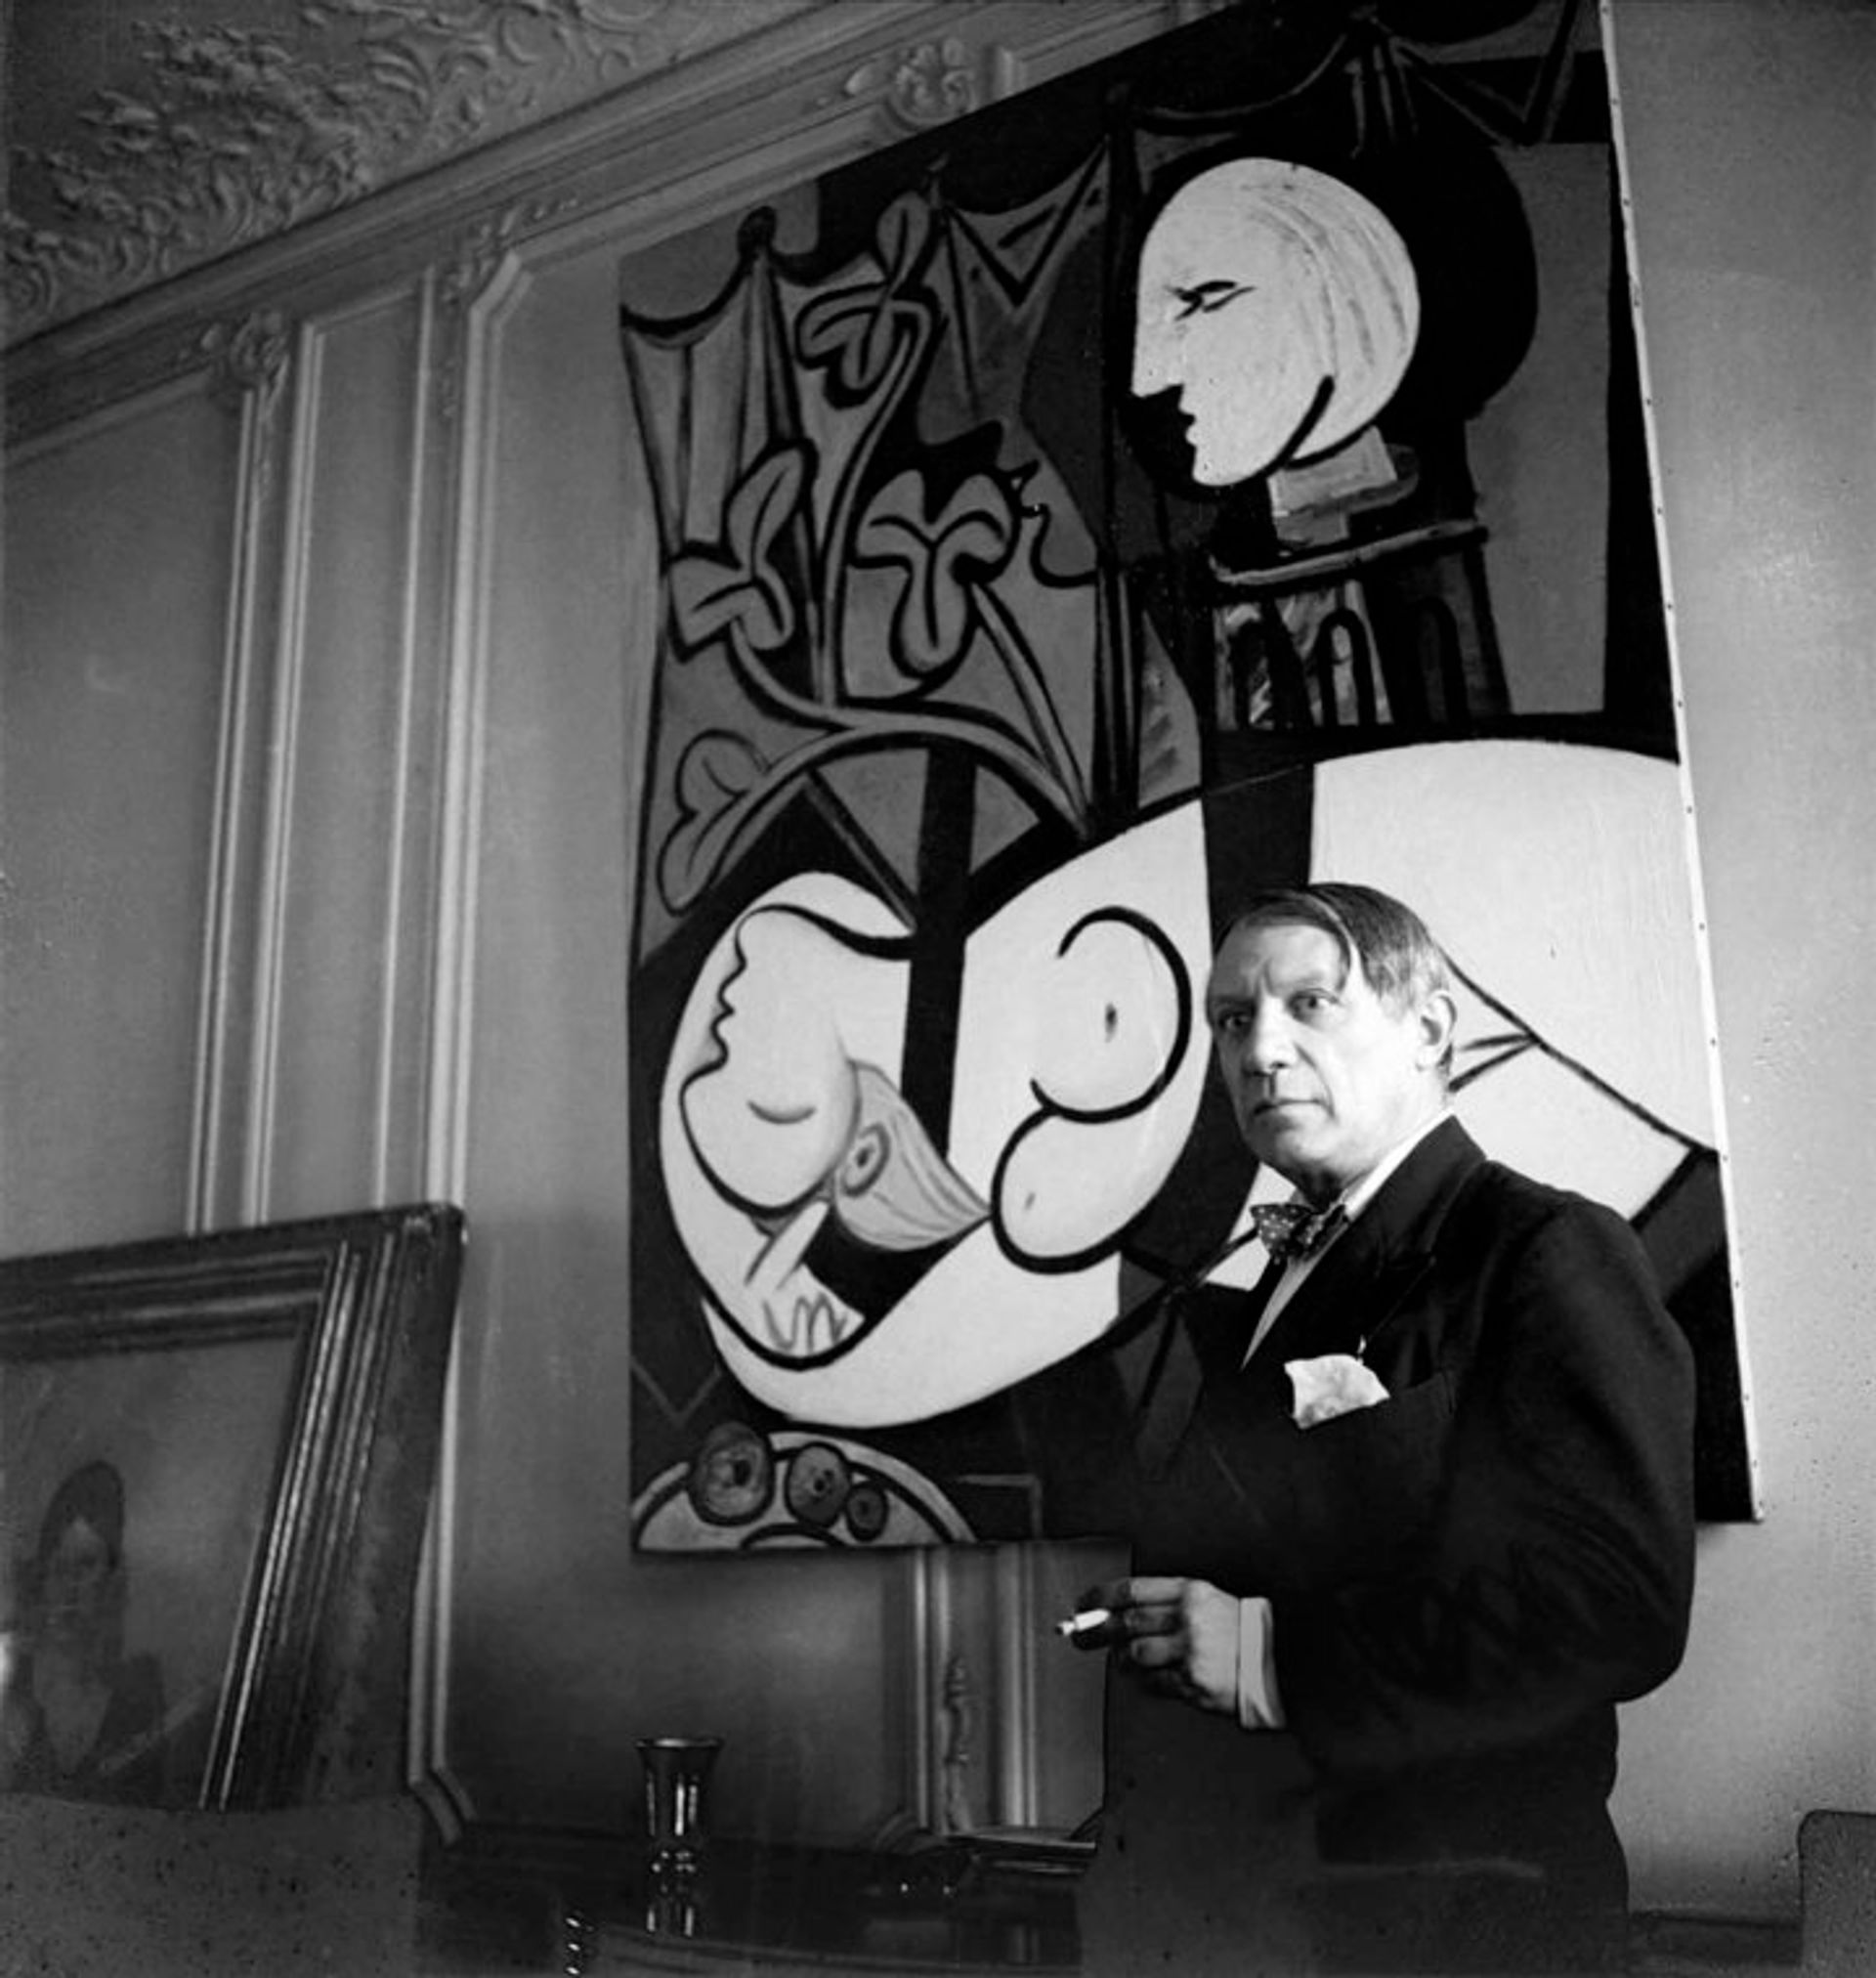 Pablo Picasso taken by Cecil Beaton The Cecil Beaton Studio Archive at Sotheby's